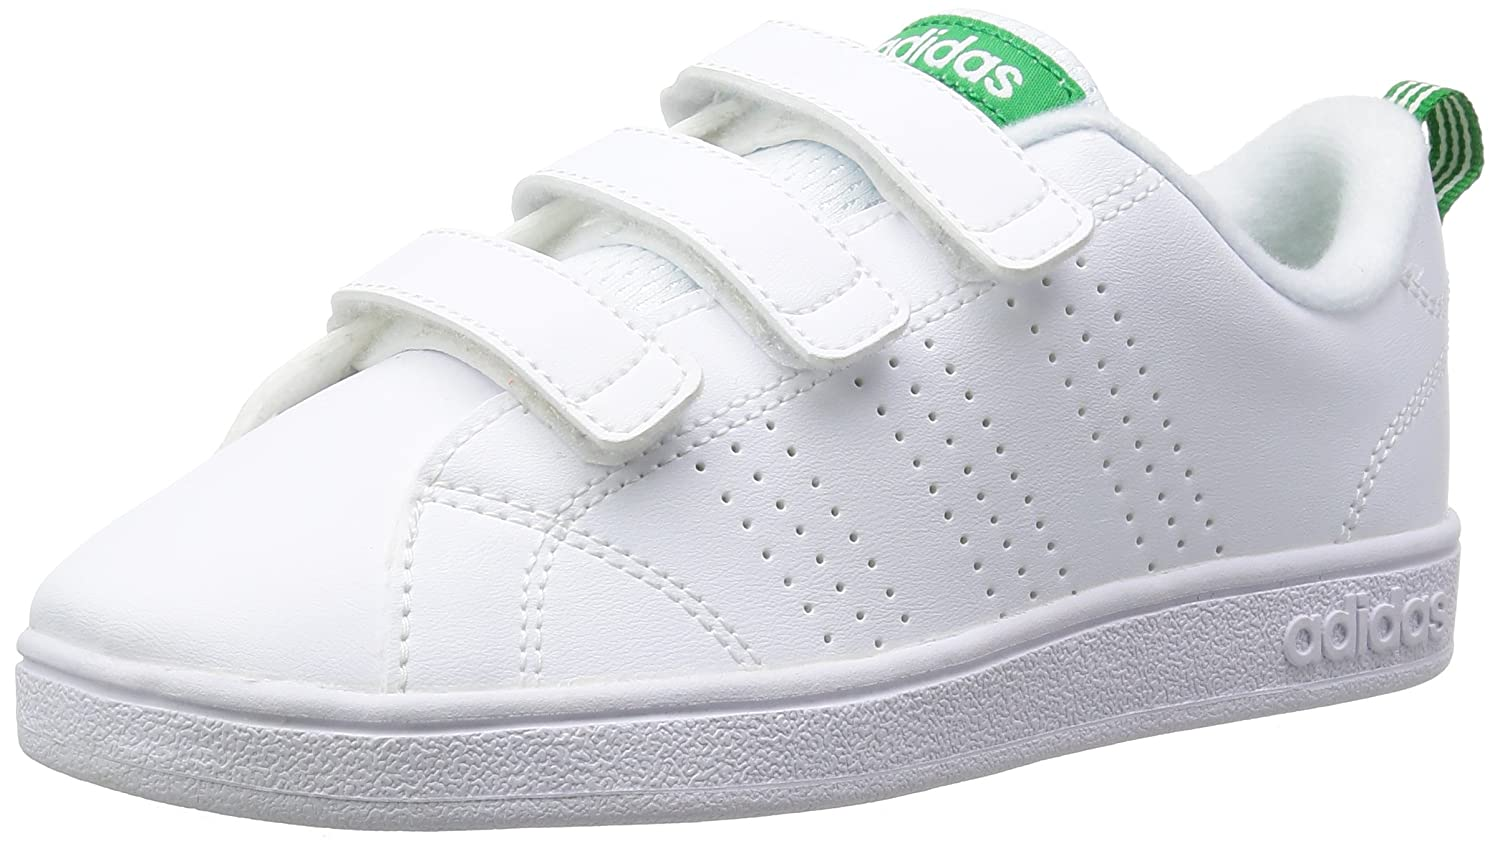 Adidas VS Advantage Cl, Zapatillas para Hombre, Blanco (Footwear White/Footwear White/Green 0), 38 EU